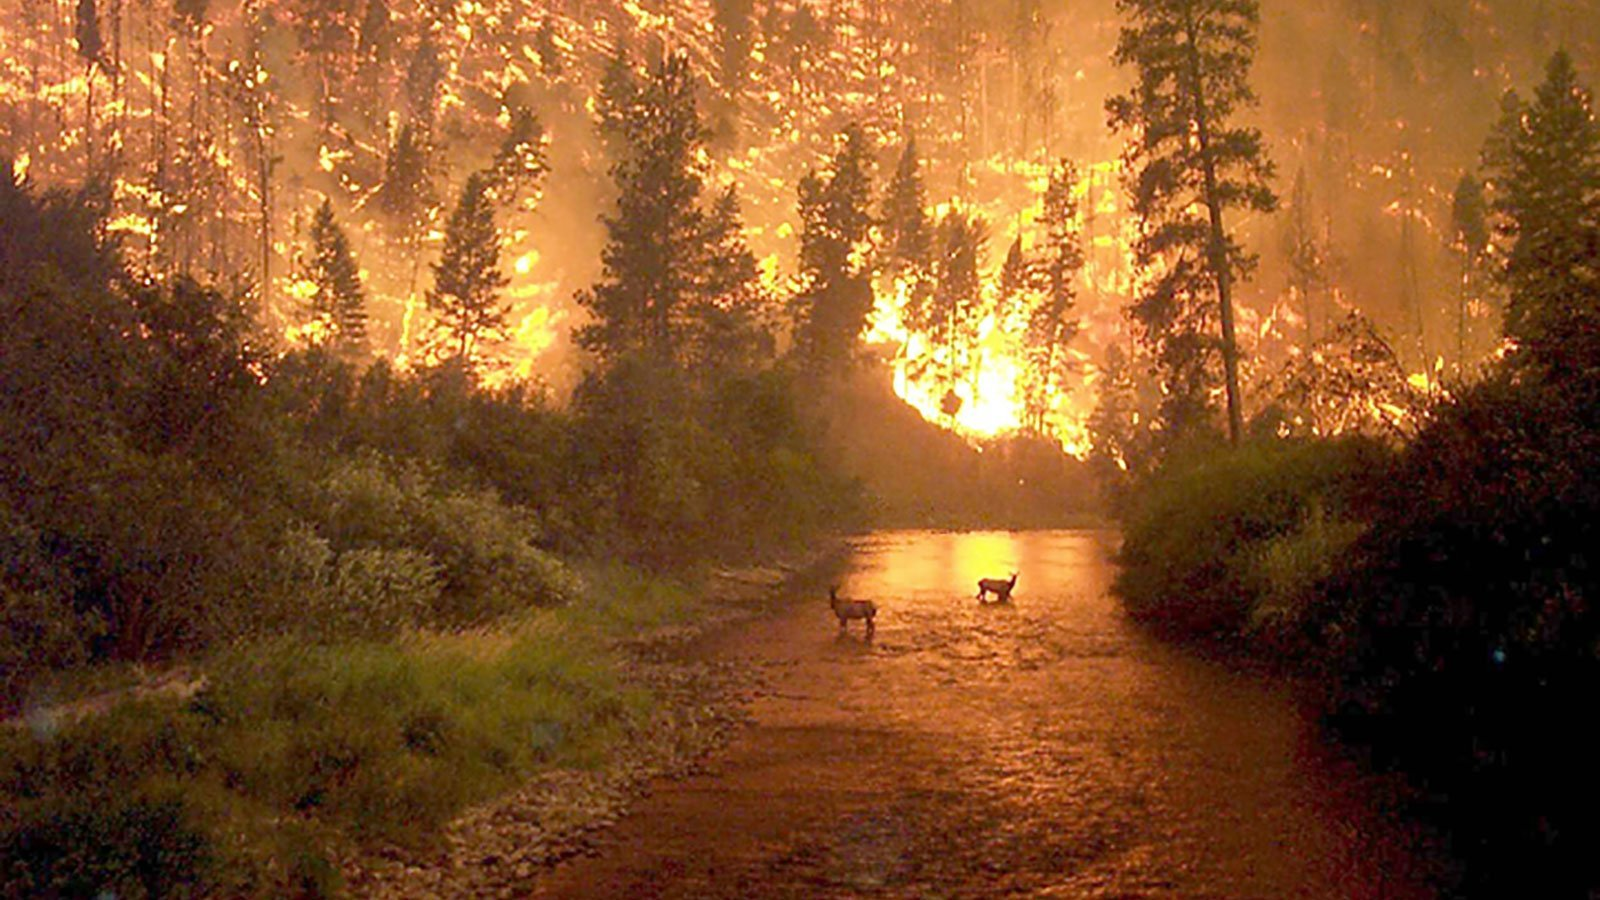 Some of the most-shared images of the Amazon rainforest fires are old or are not of the Amazon